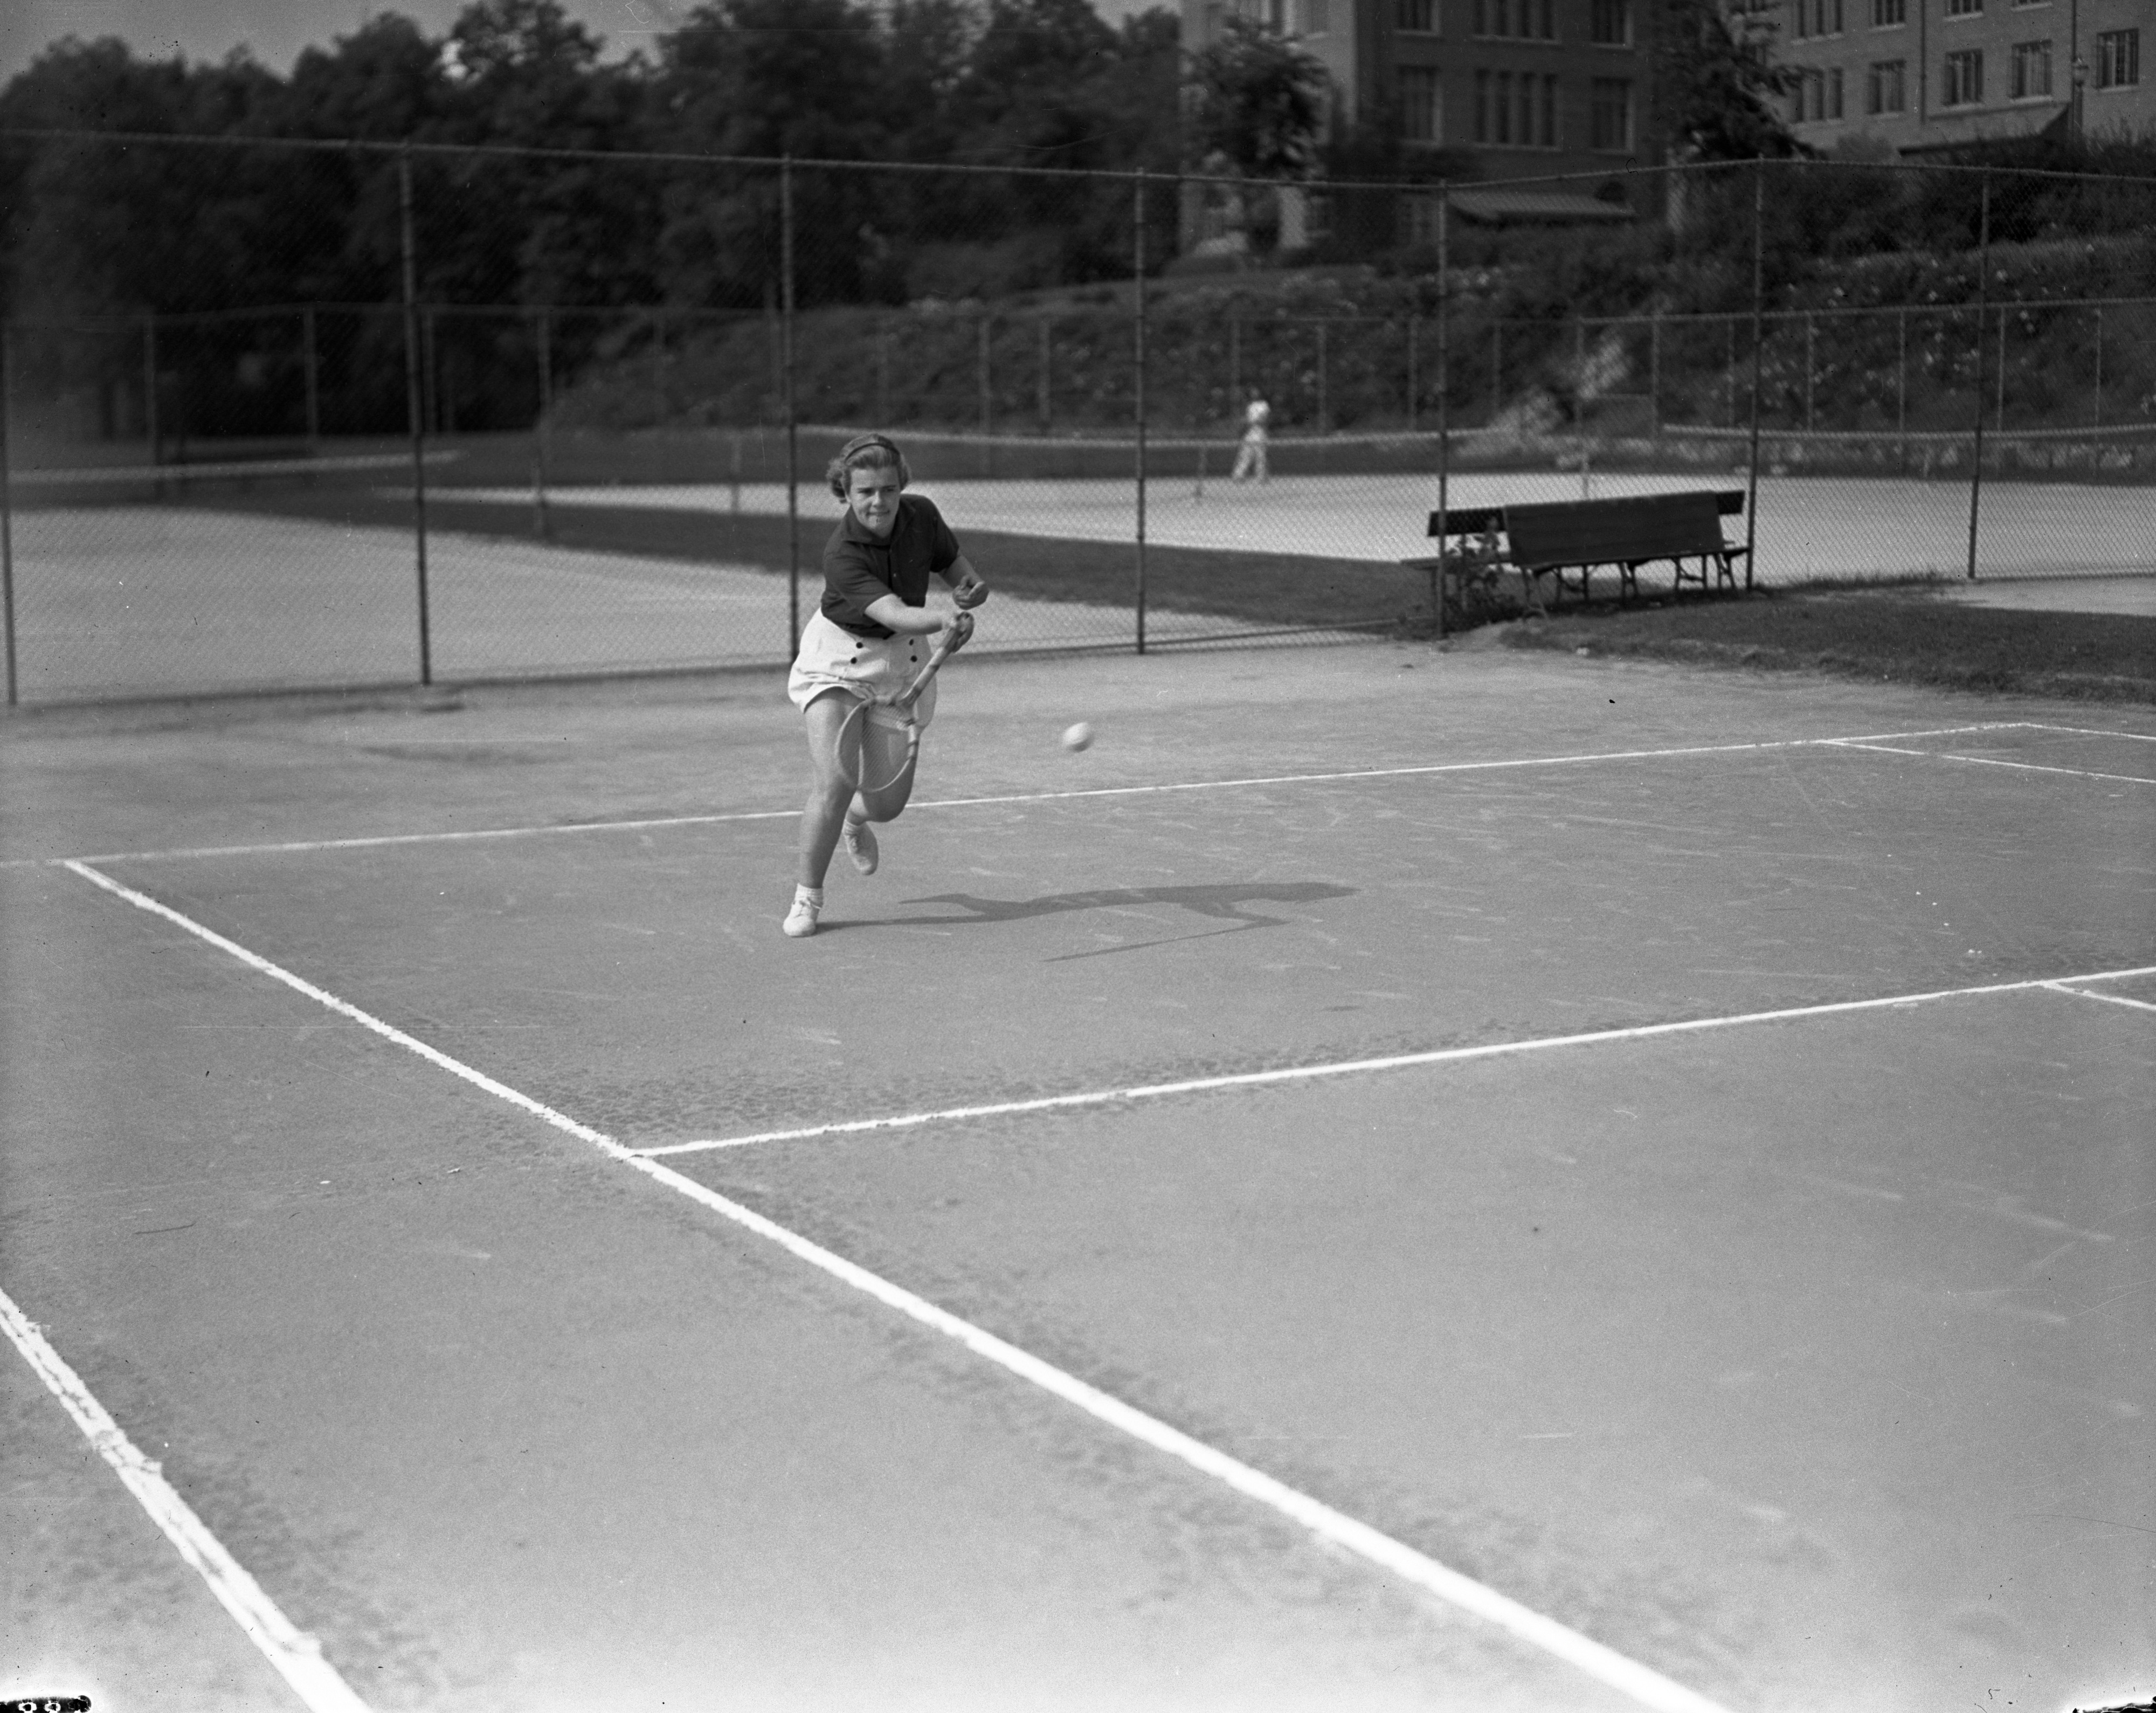 Women's Junior Tennis: Sanders & Ford, 1937 image